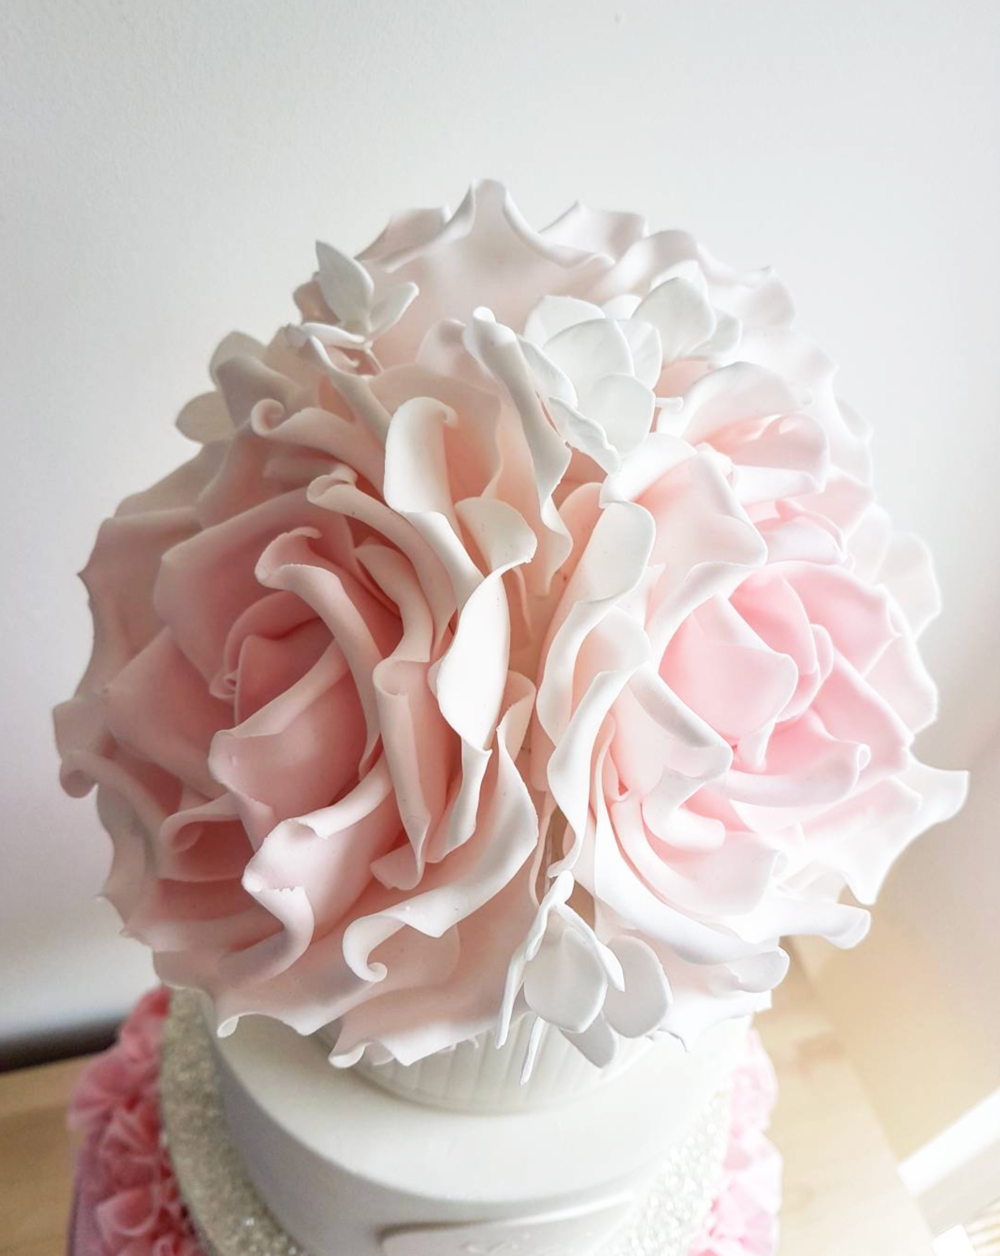 DOTTY ROSE CAKE DESIGN SUGARCRAFT FLOWERS PEONIES.png